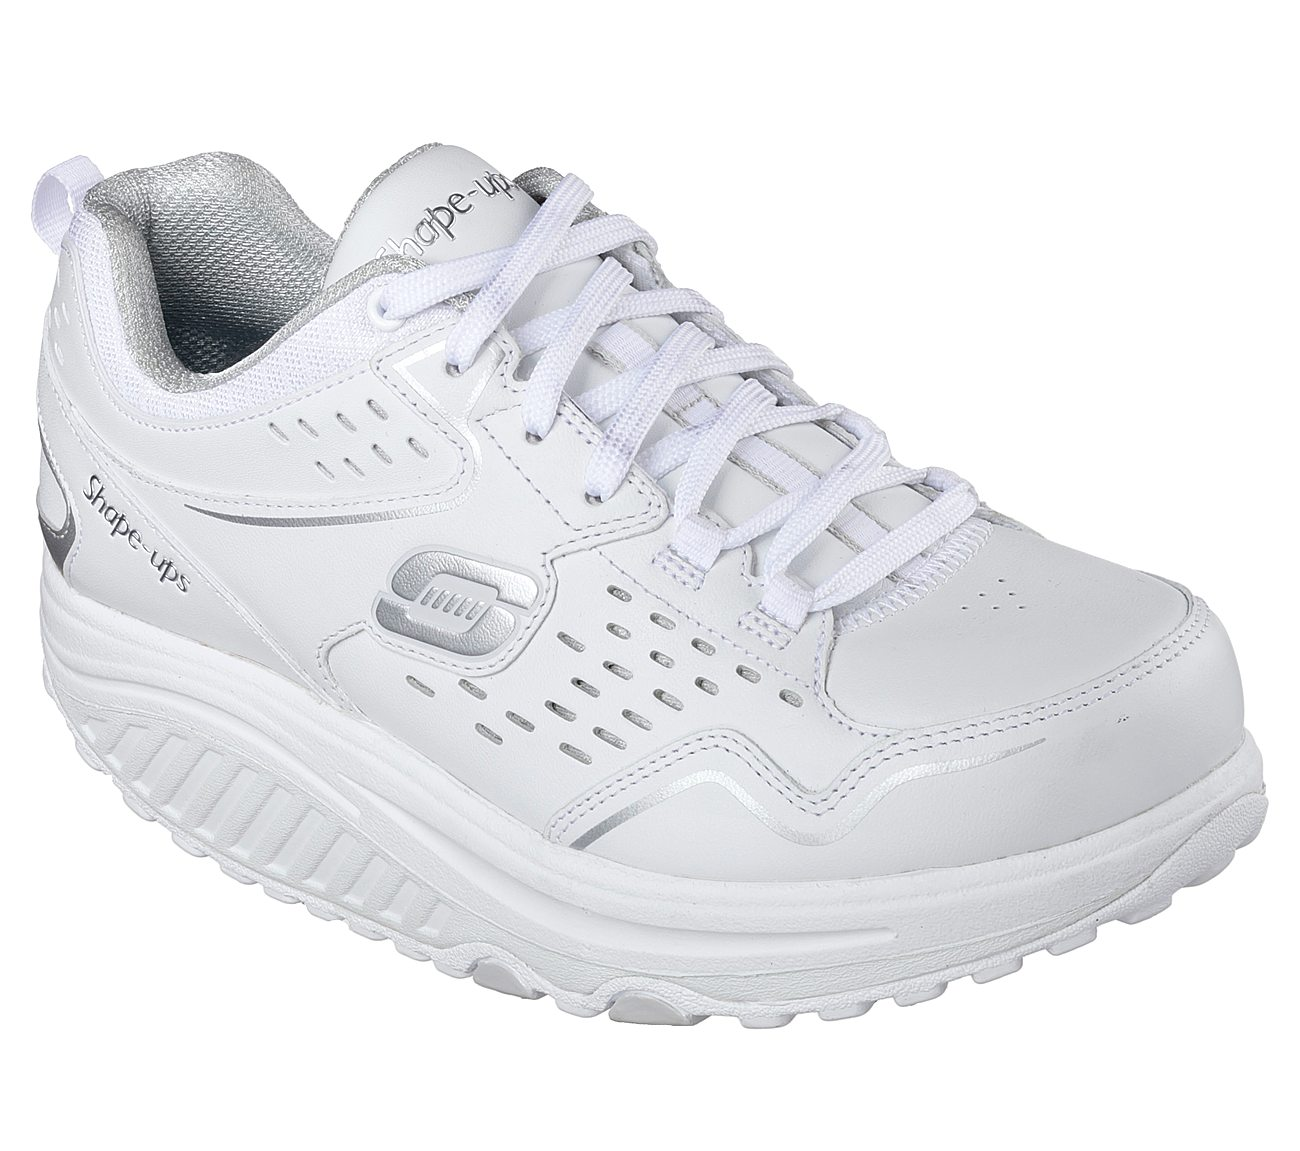 2b975b4a61637 Buy SKECHERS Shape-ups 2.0 - Perfect Comfort Walking Shoes Shoes ...